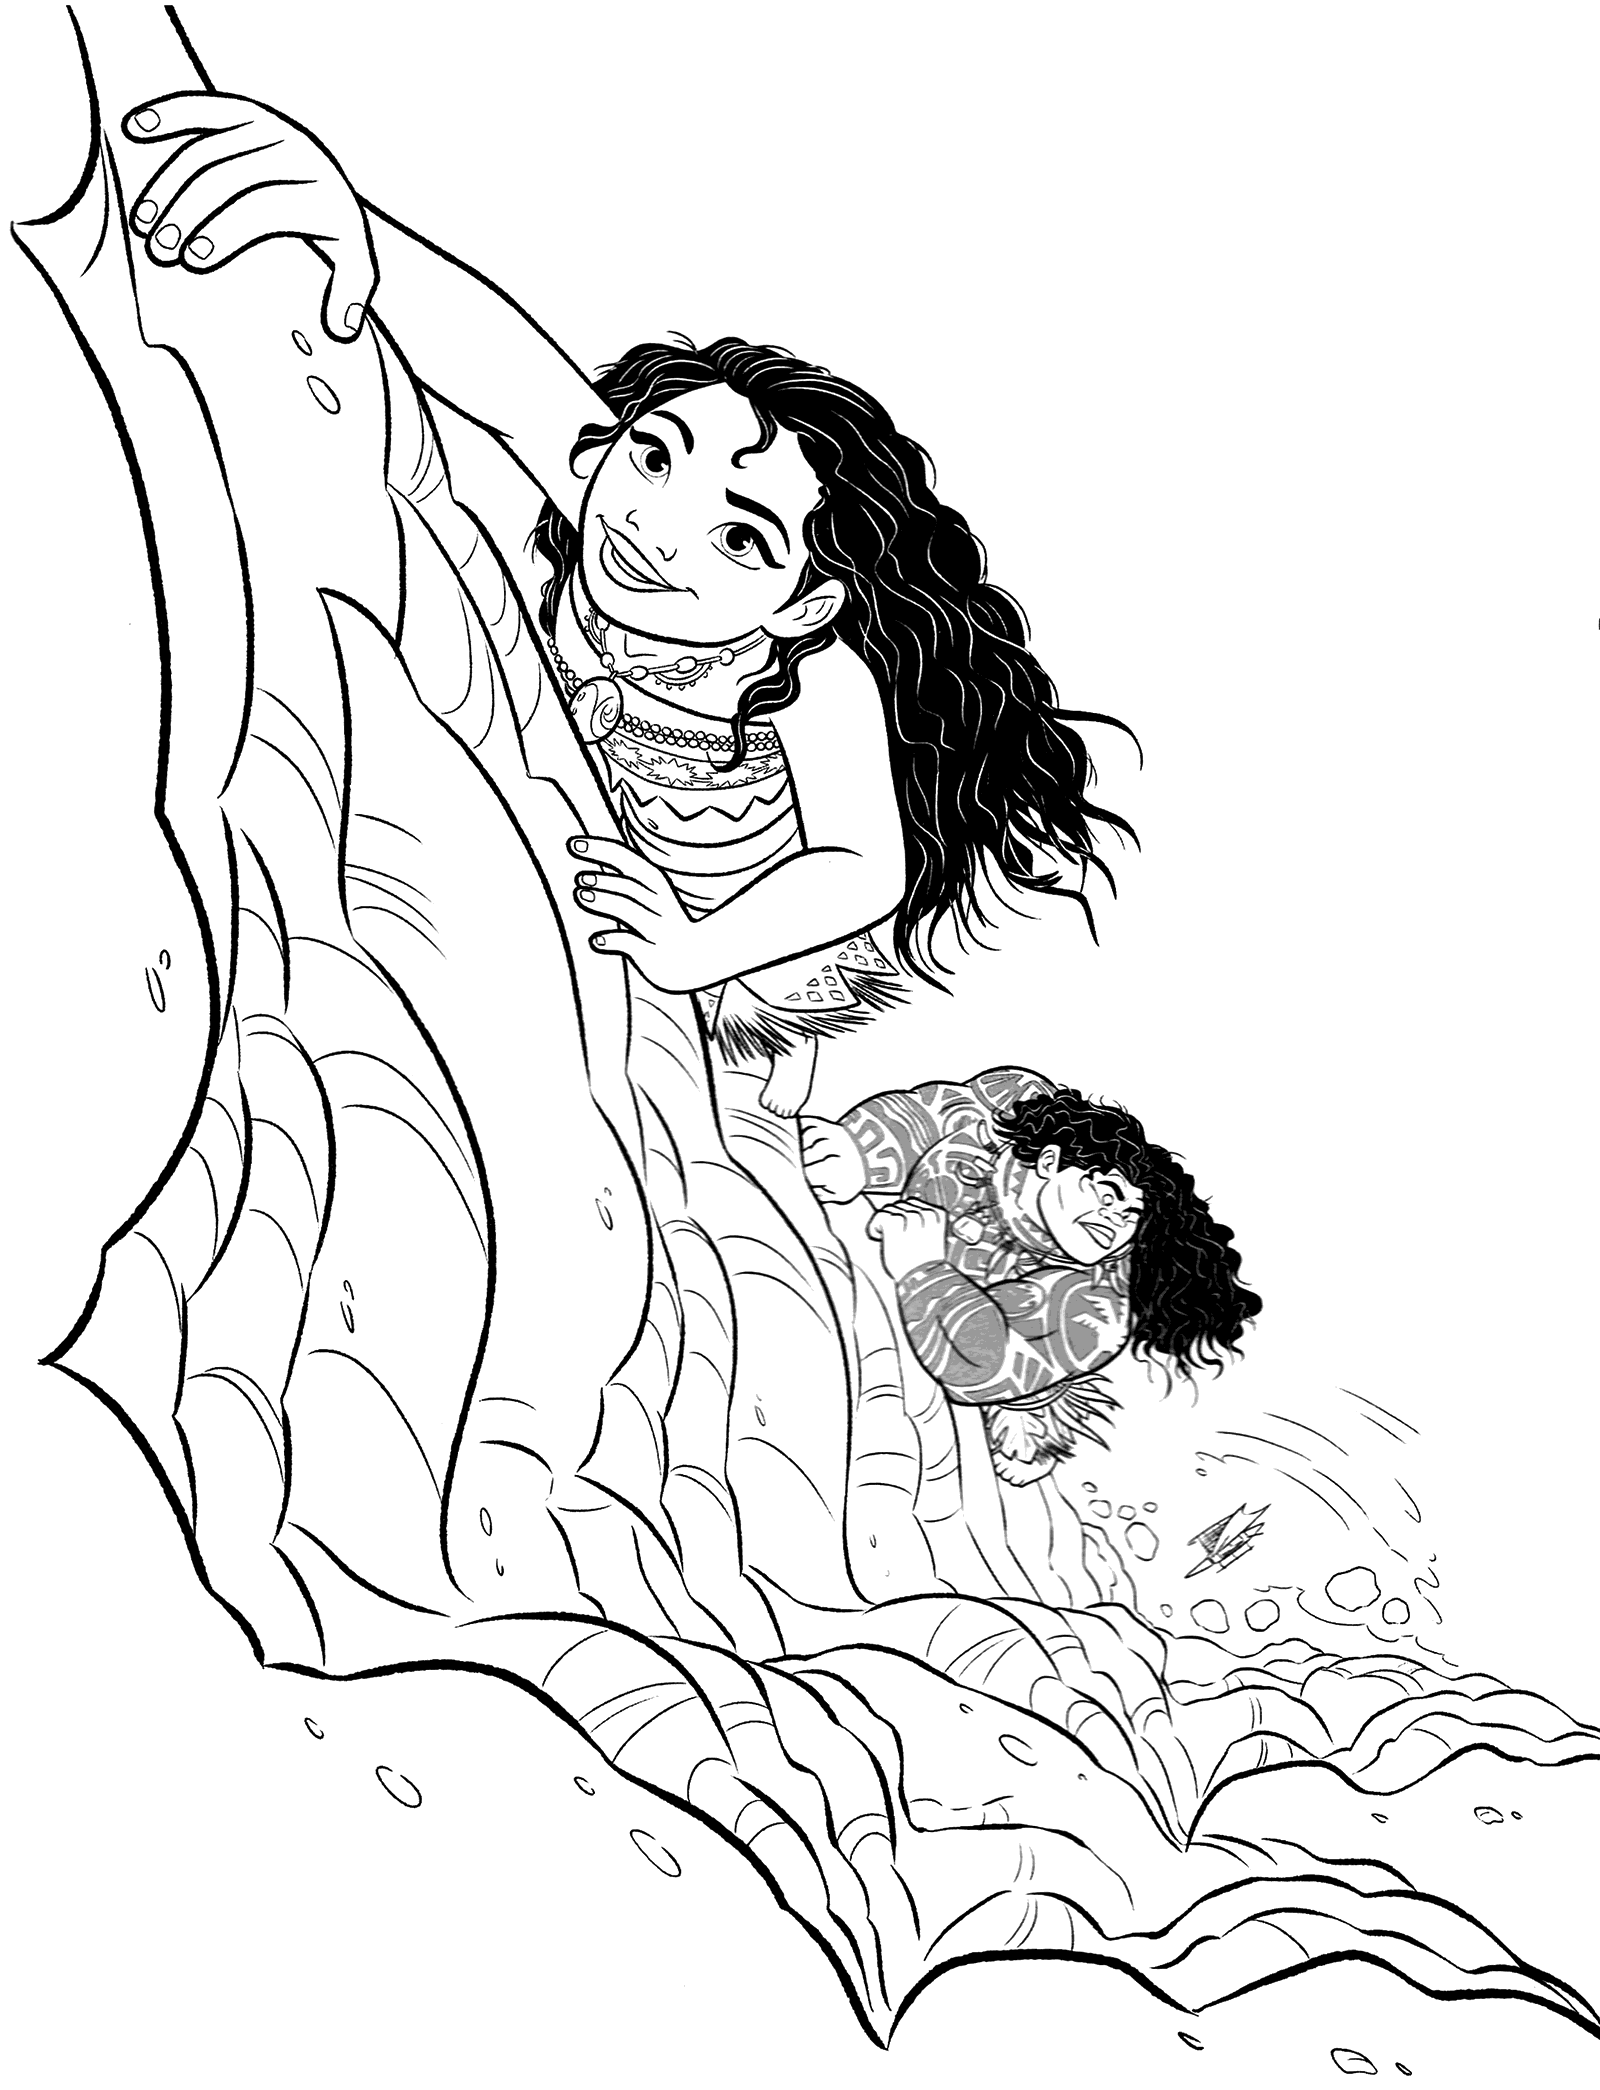 coloring book pages moana moana coloring pages best coloring pages for kids coloring book moana pages